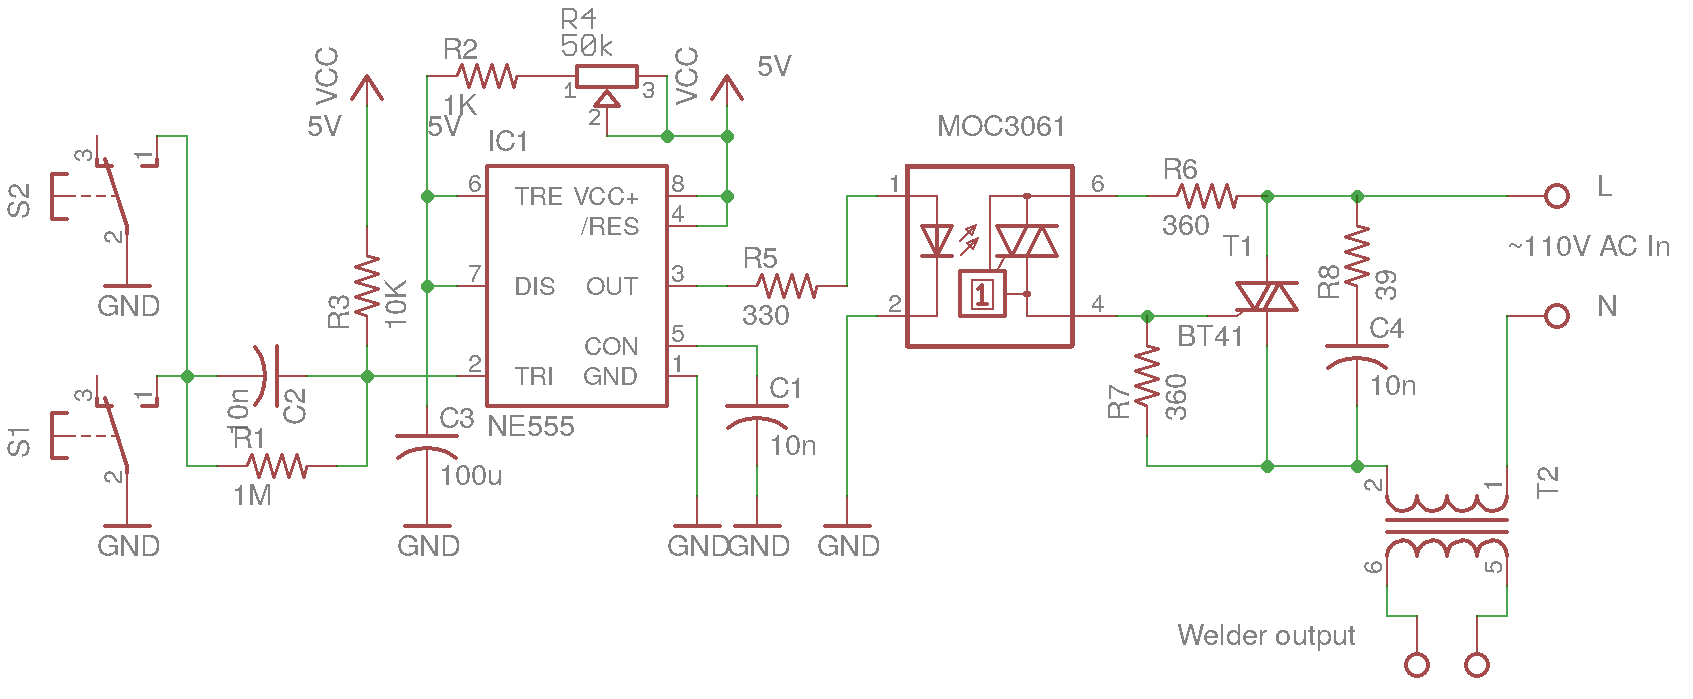 hight resolution of dot welder diagram wiring diagram bibliotheca welder parts dot welder diagram